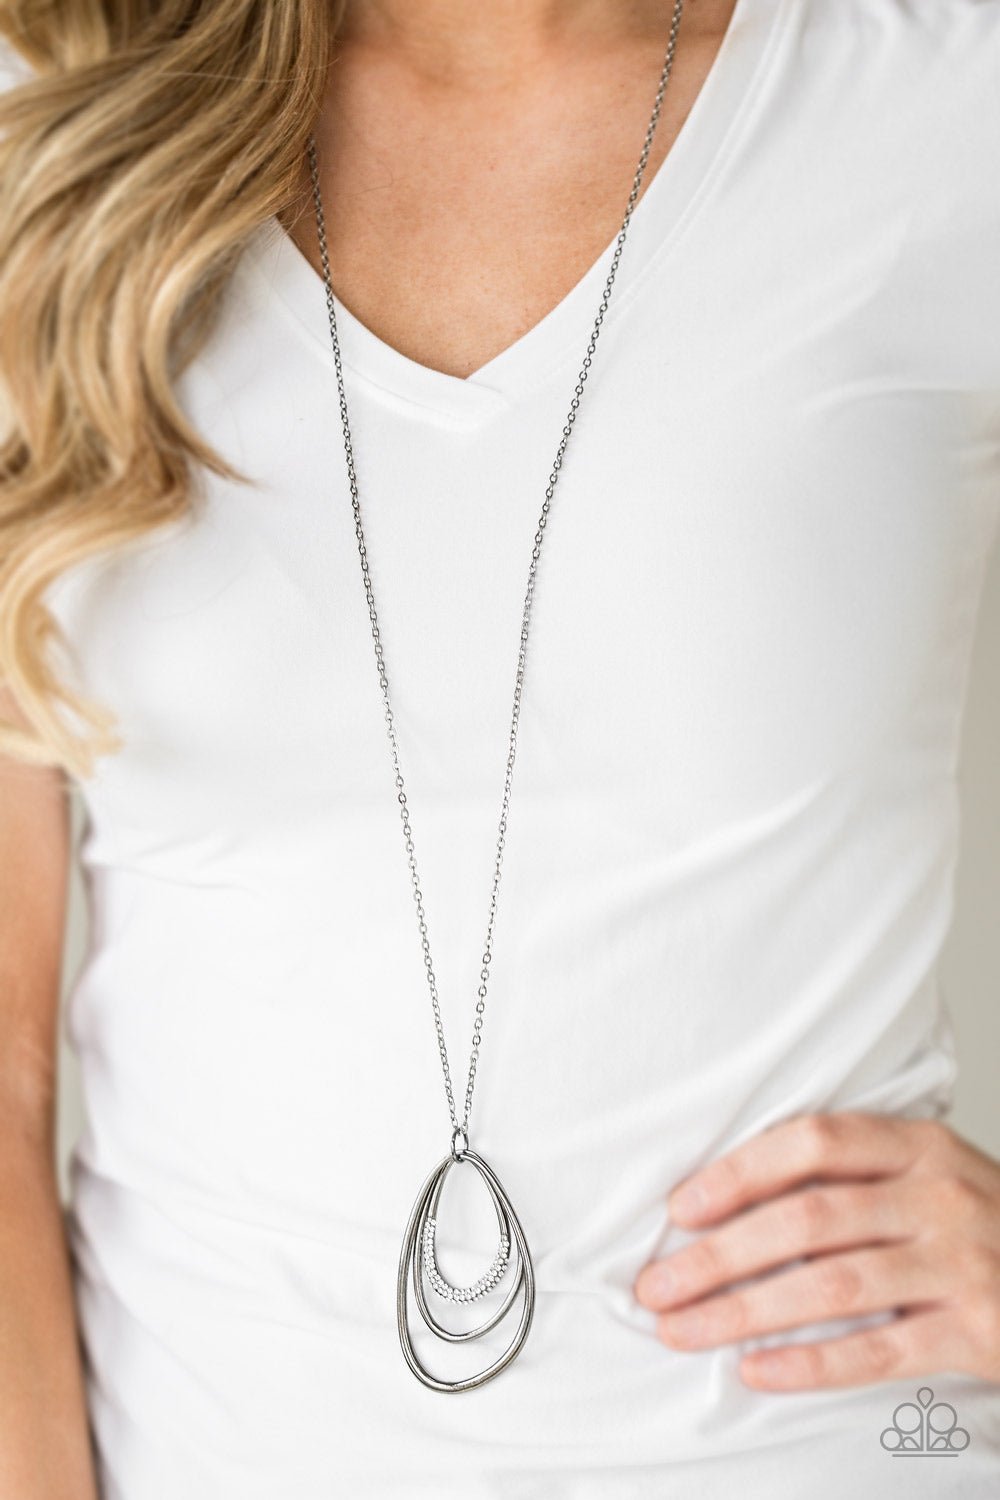 Already Aglow - black - Paparazzi necklace